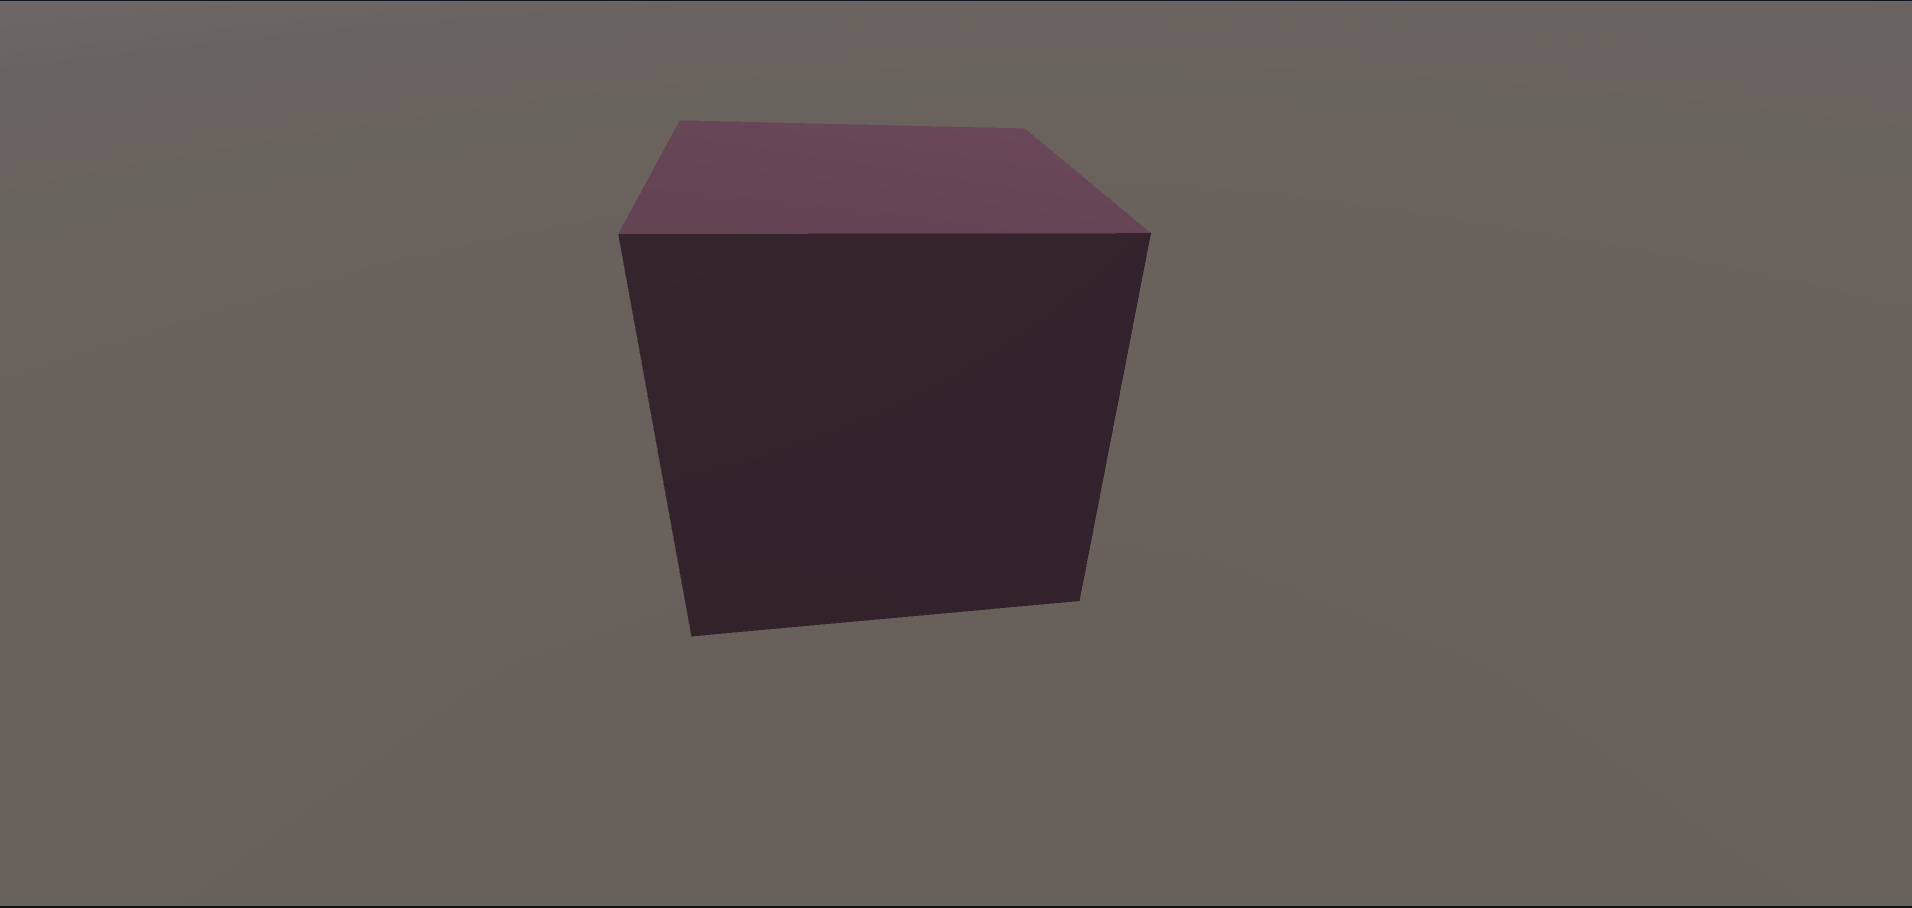 The Cube Modded